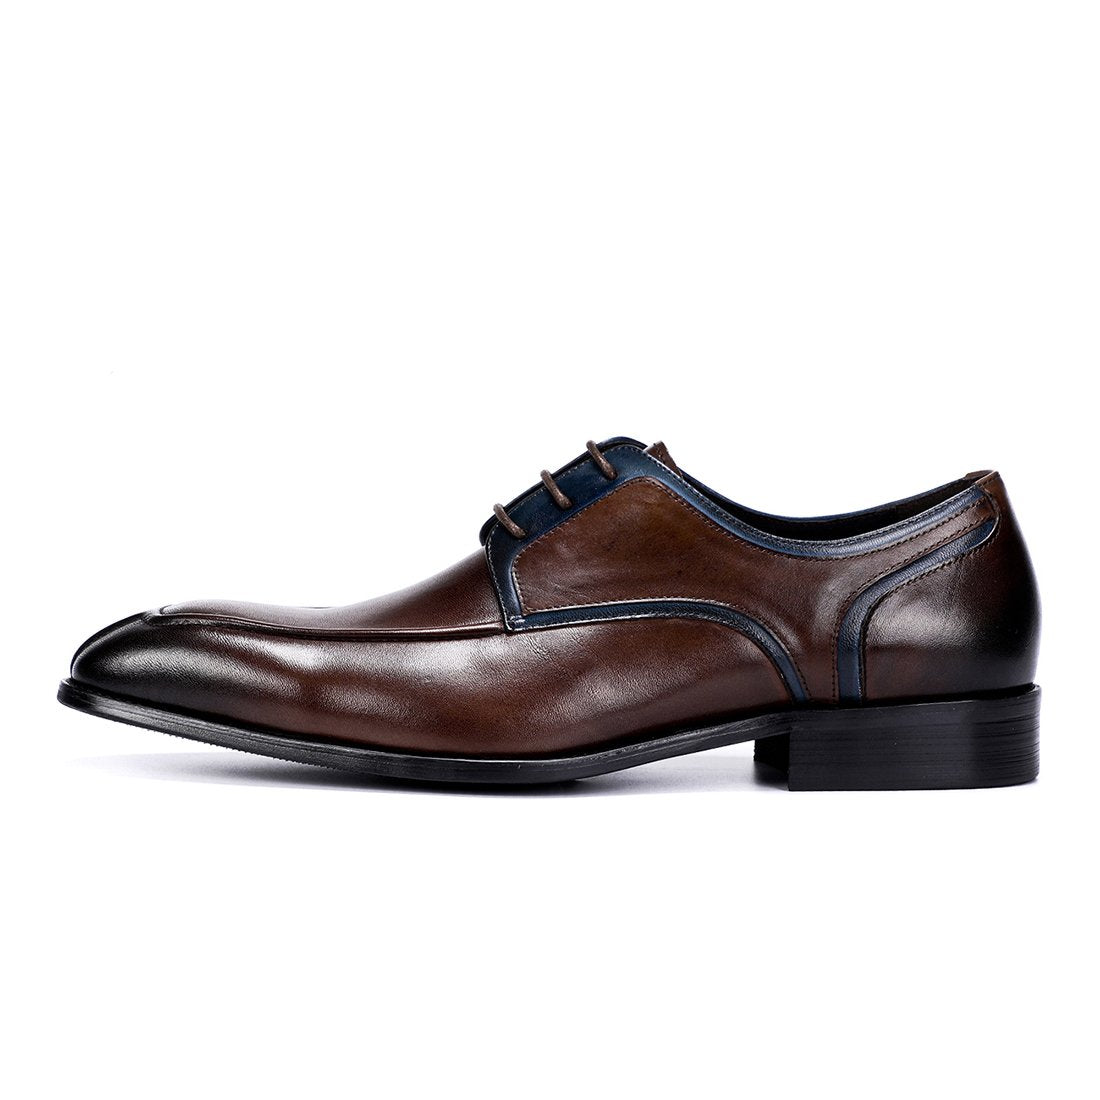 Men's Vintage Derbies Shoes